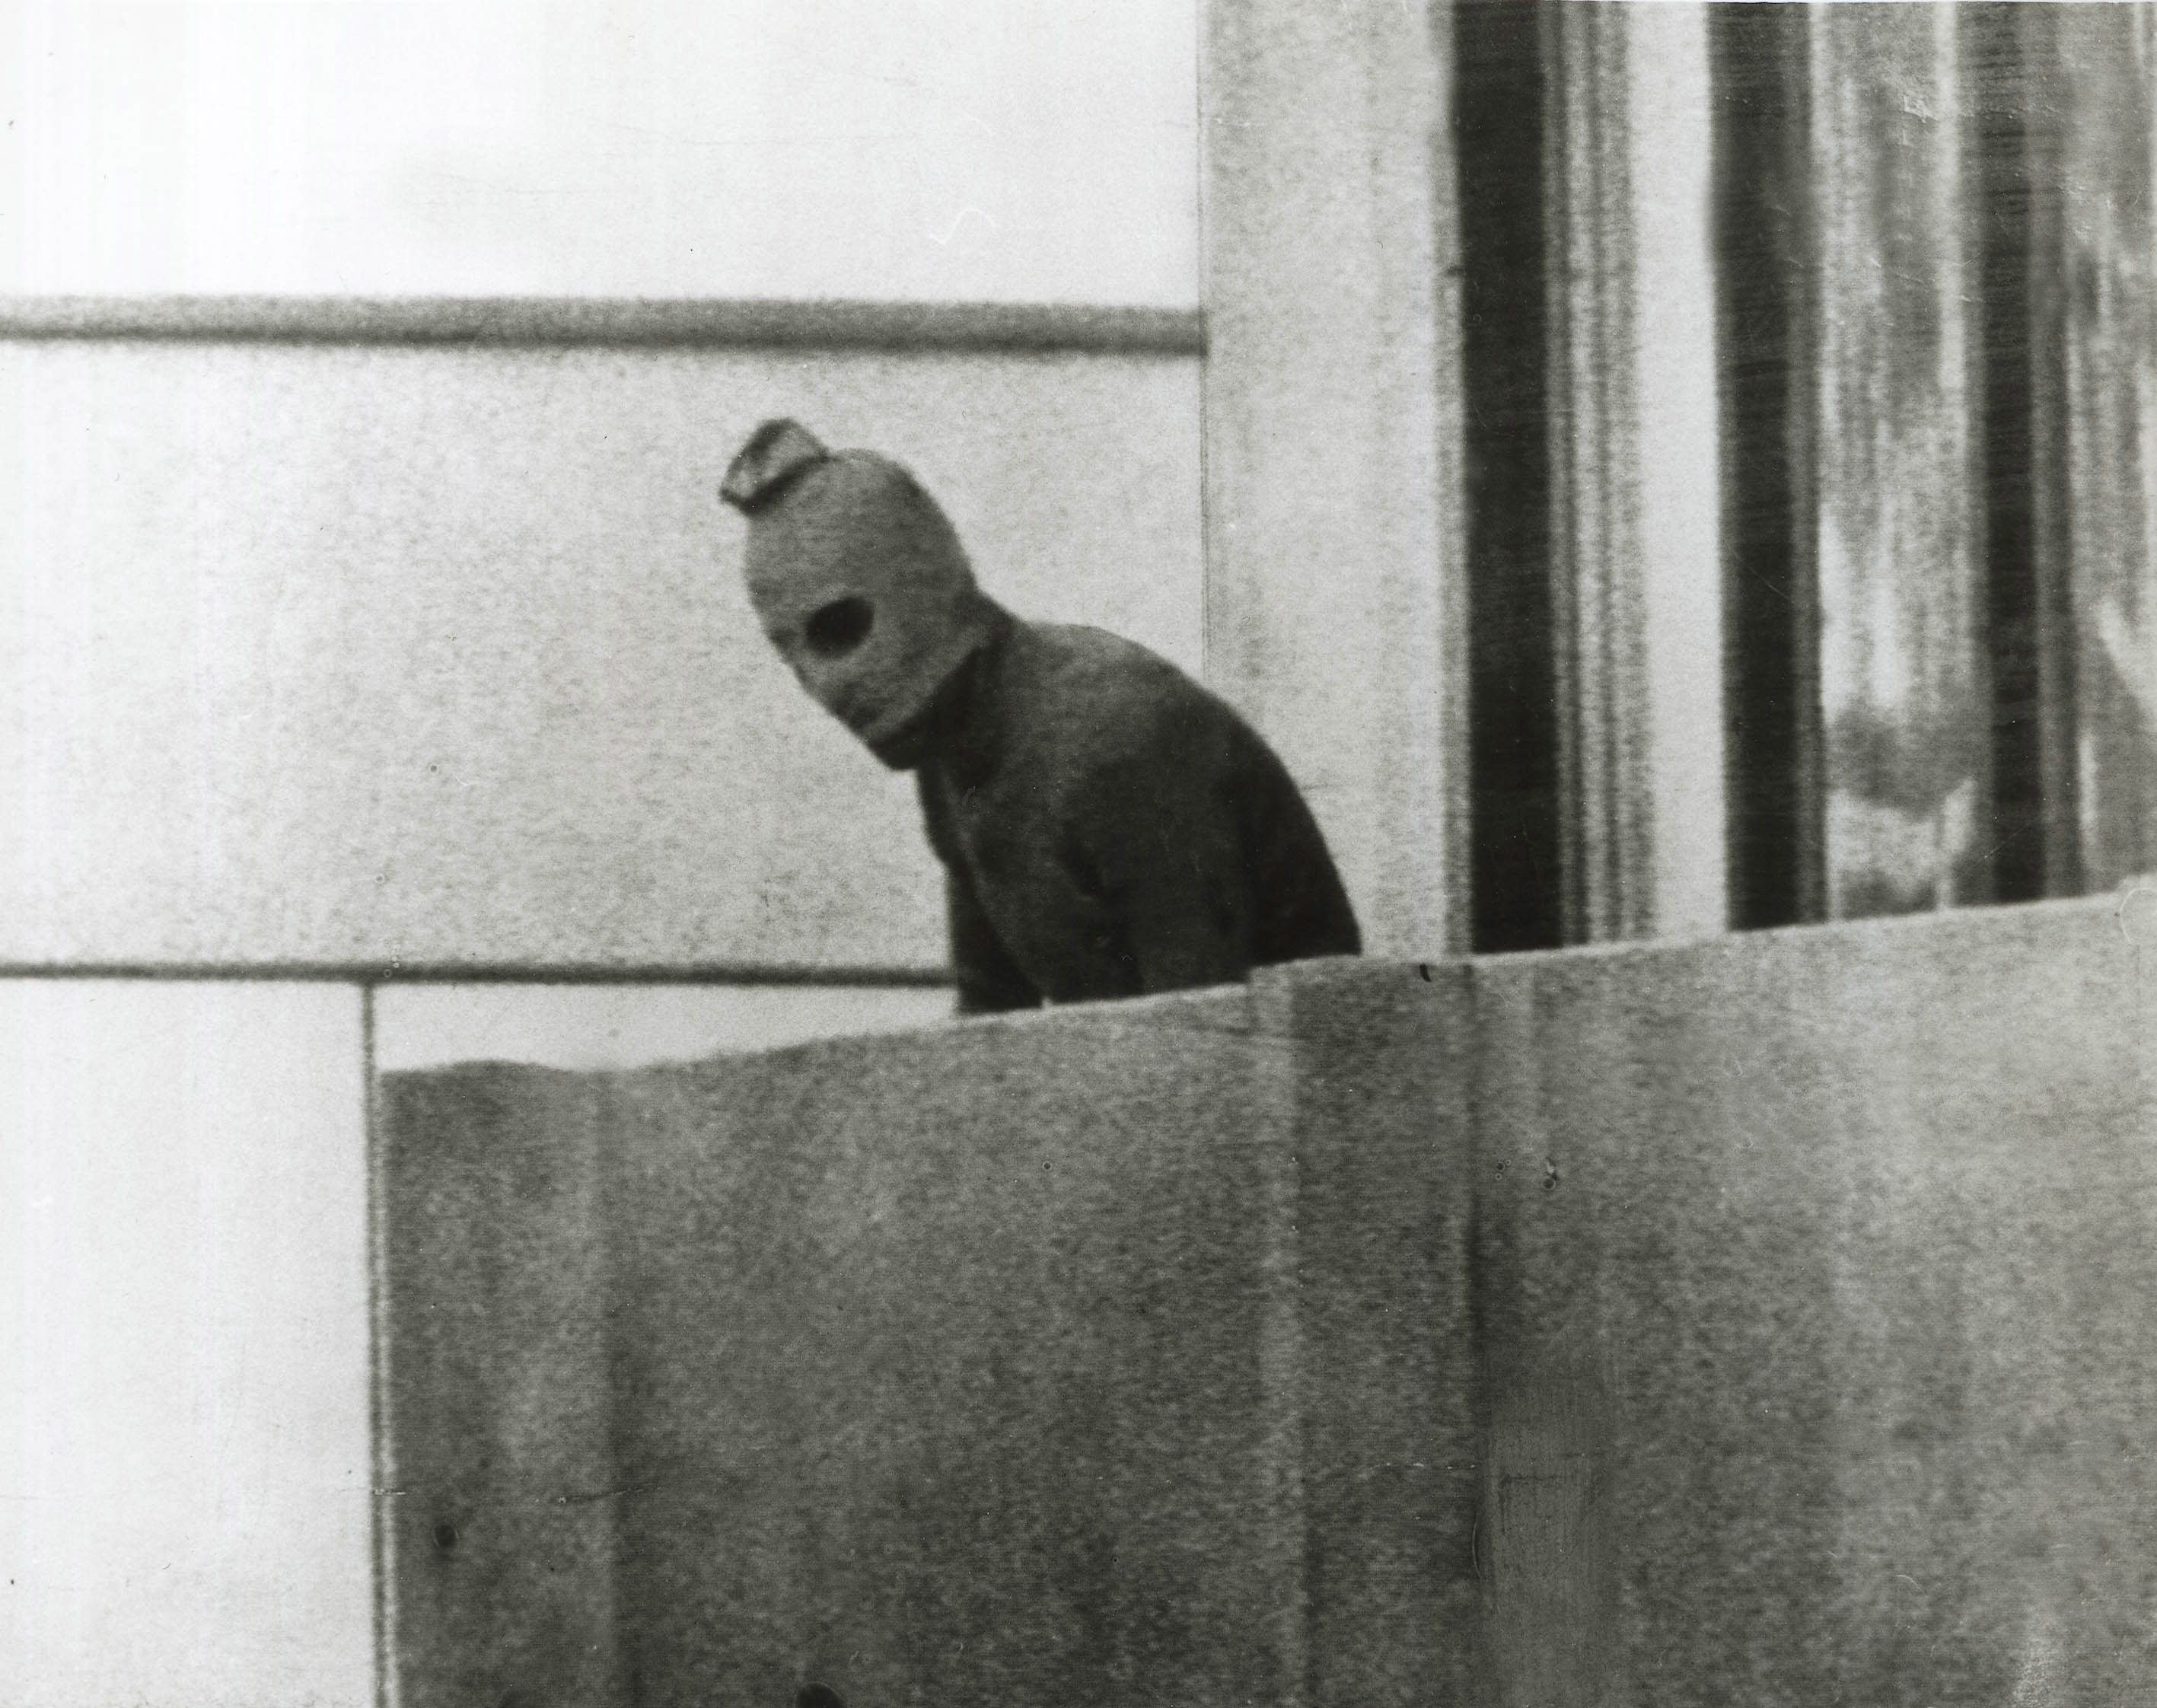 (AUSTRALIA & NEW ZEALAND OUT) The Big Picture. A Fairfax photographer captured one of the defining images of the Munich Olympics in 1972. This Palestinian is one of a group that had taken 12 Israeli athletes hostage. SMH NEWS Picture by RUSSELL MCPHEDRAN (Photo by Fairfax Media/Fairfax Media via Getty Images)